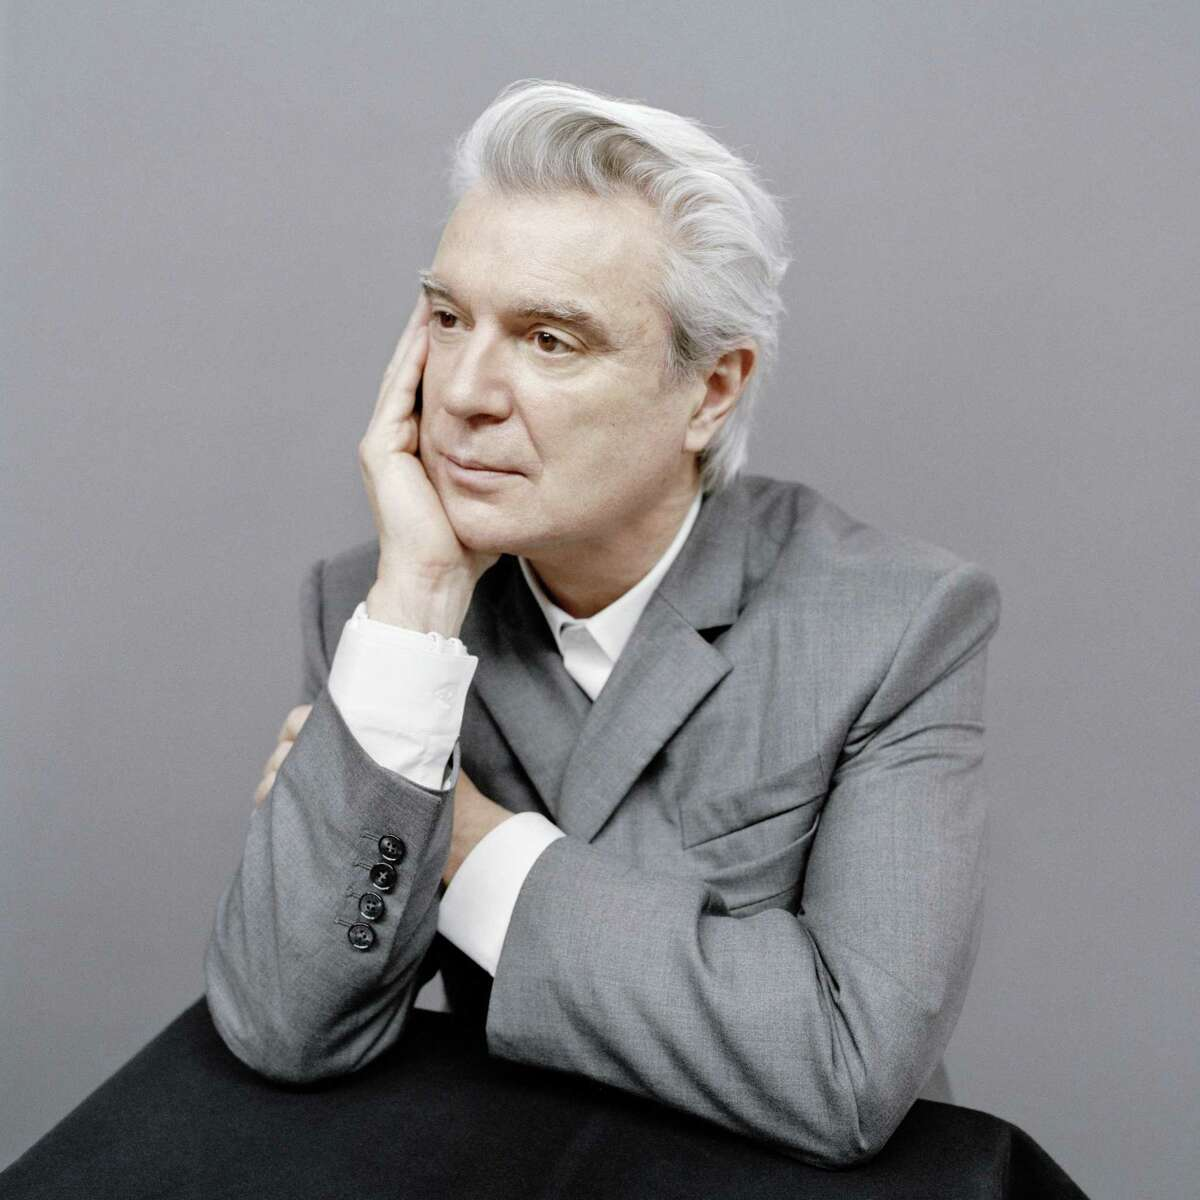 """David Byrne, formerly of Talking Heads, released """"American Utopia"""" earlier this year."""